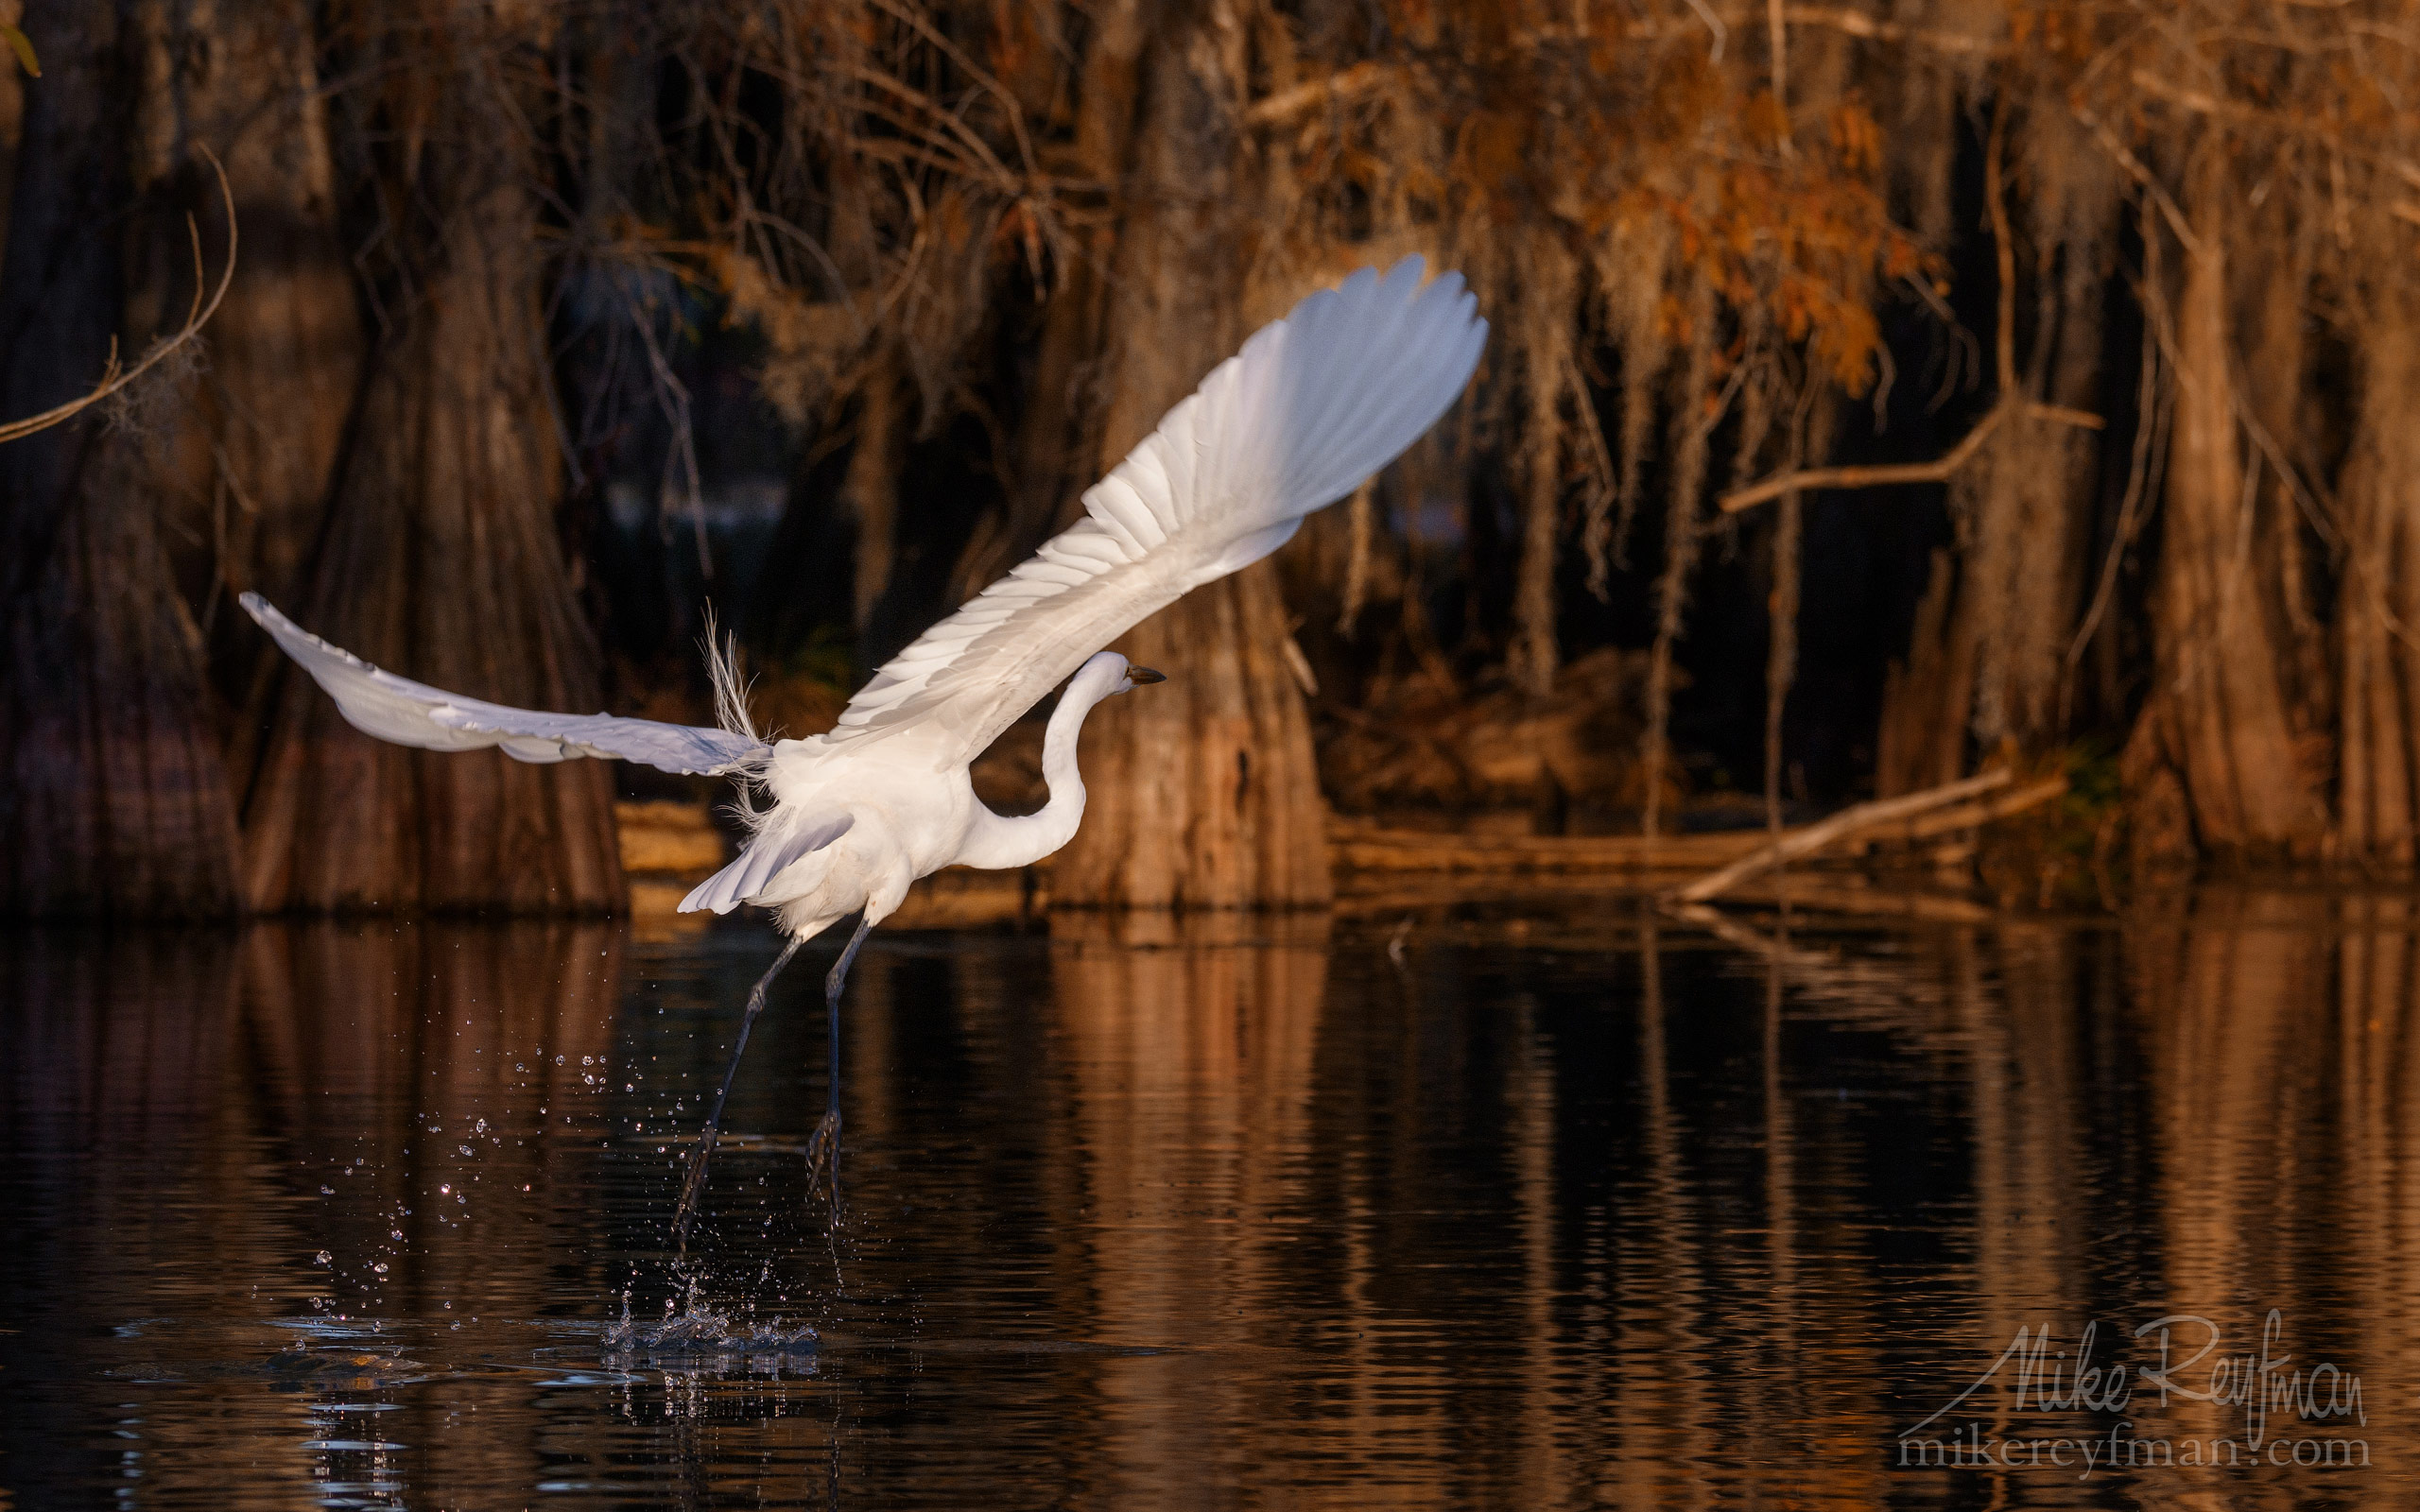 Great Egret with the buttressed trunks of Bald Cypress and Tupelo trees in the background. Lake Martin, Louisiana, US 066-LT1-50A4056.jpg - Bold Cypress and Tupelo Trees in the swamps of Atchafalaya River Basin. Caddo, Martin and Fousse Lakes. Texas/Louisiana, USA. - Mike Reyfman Photography